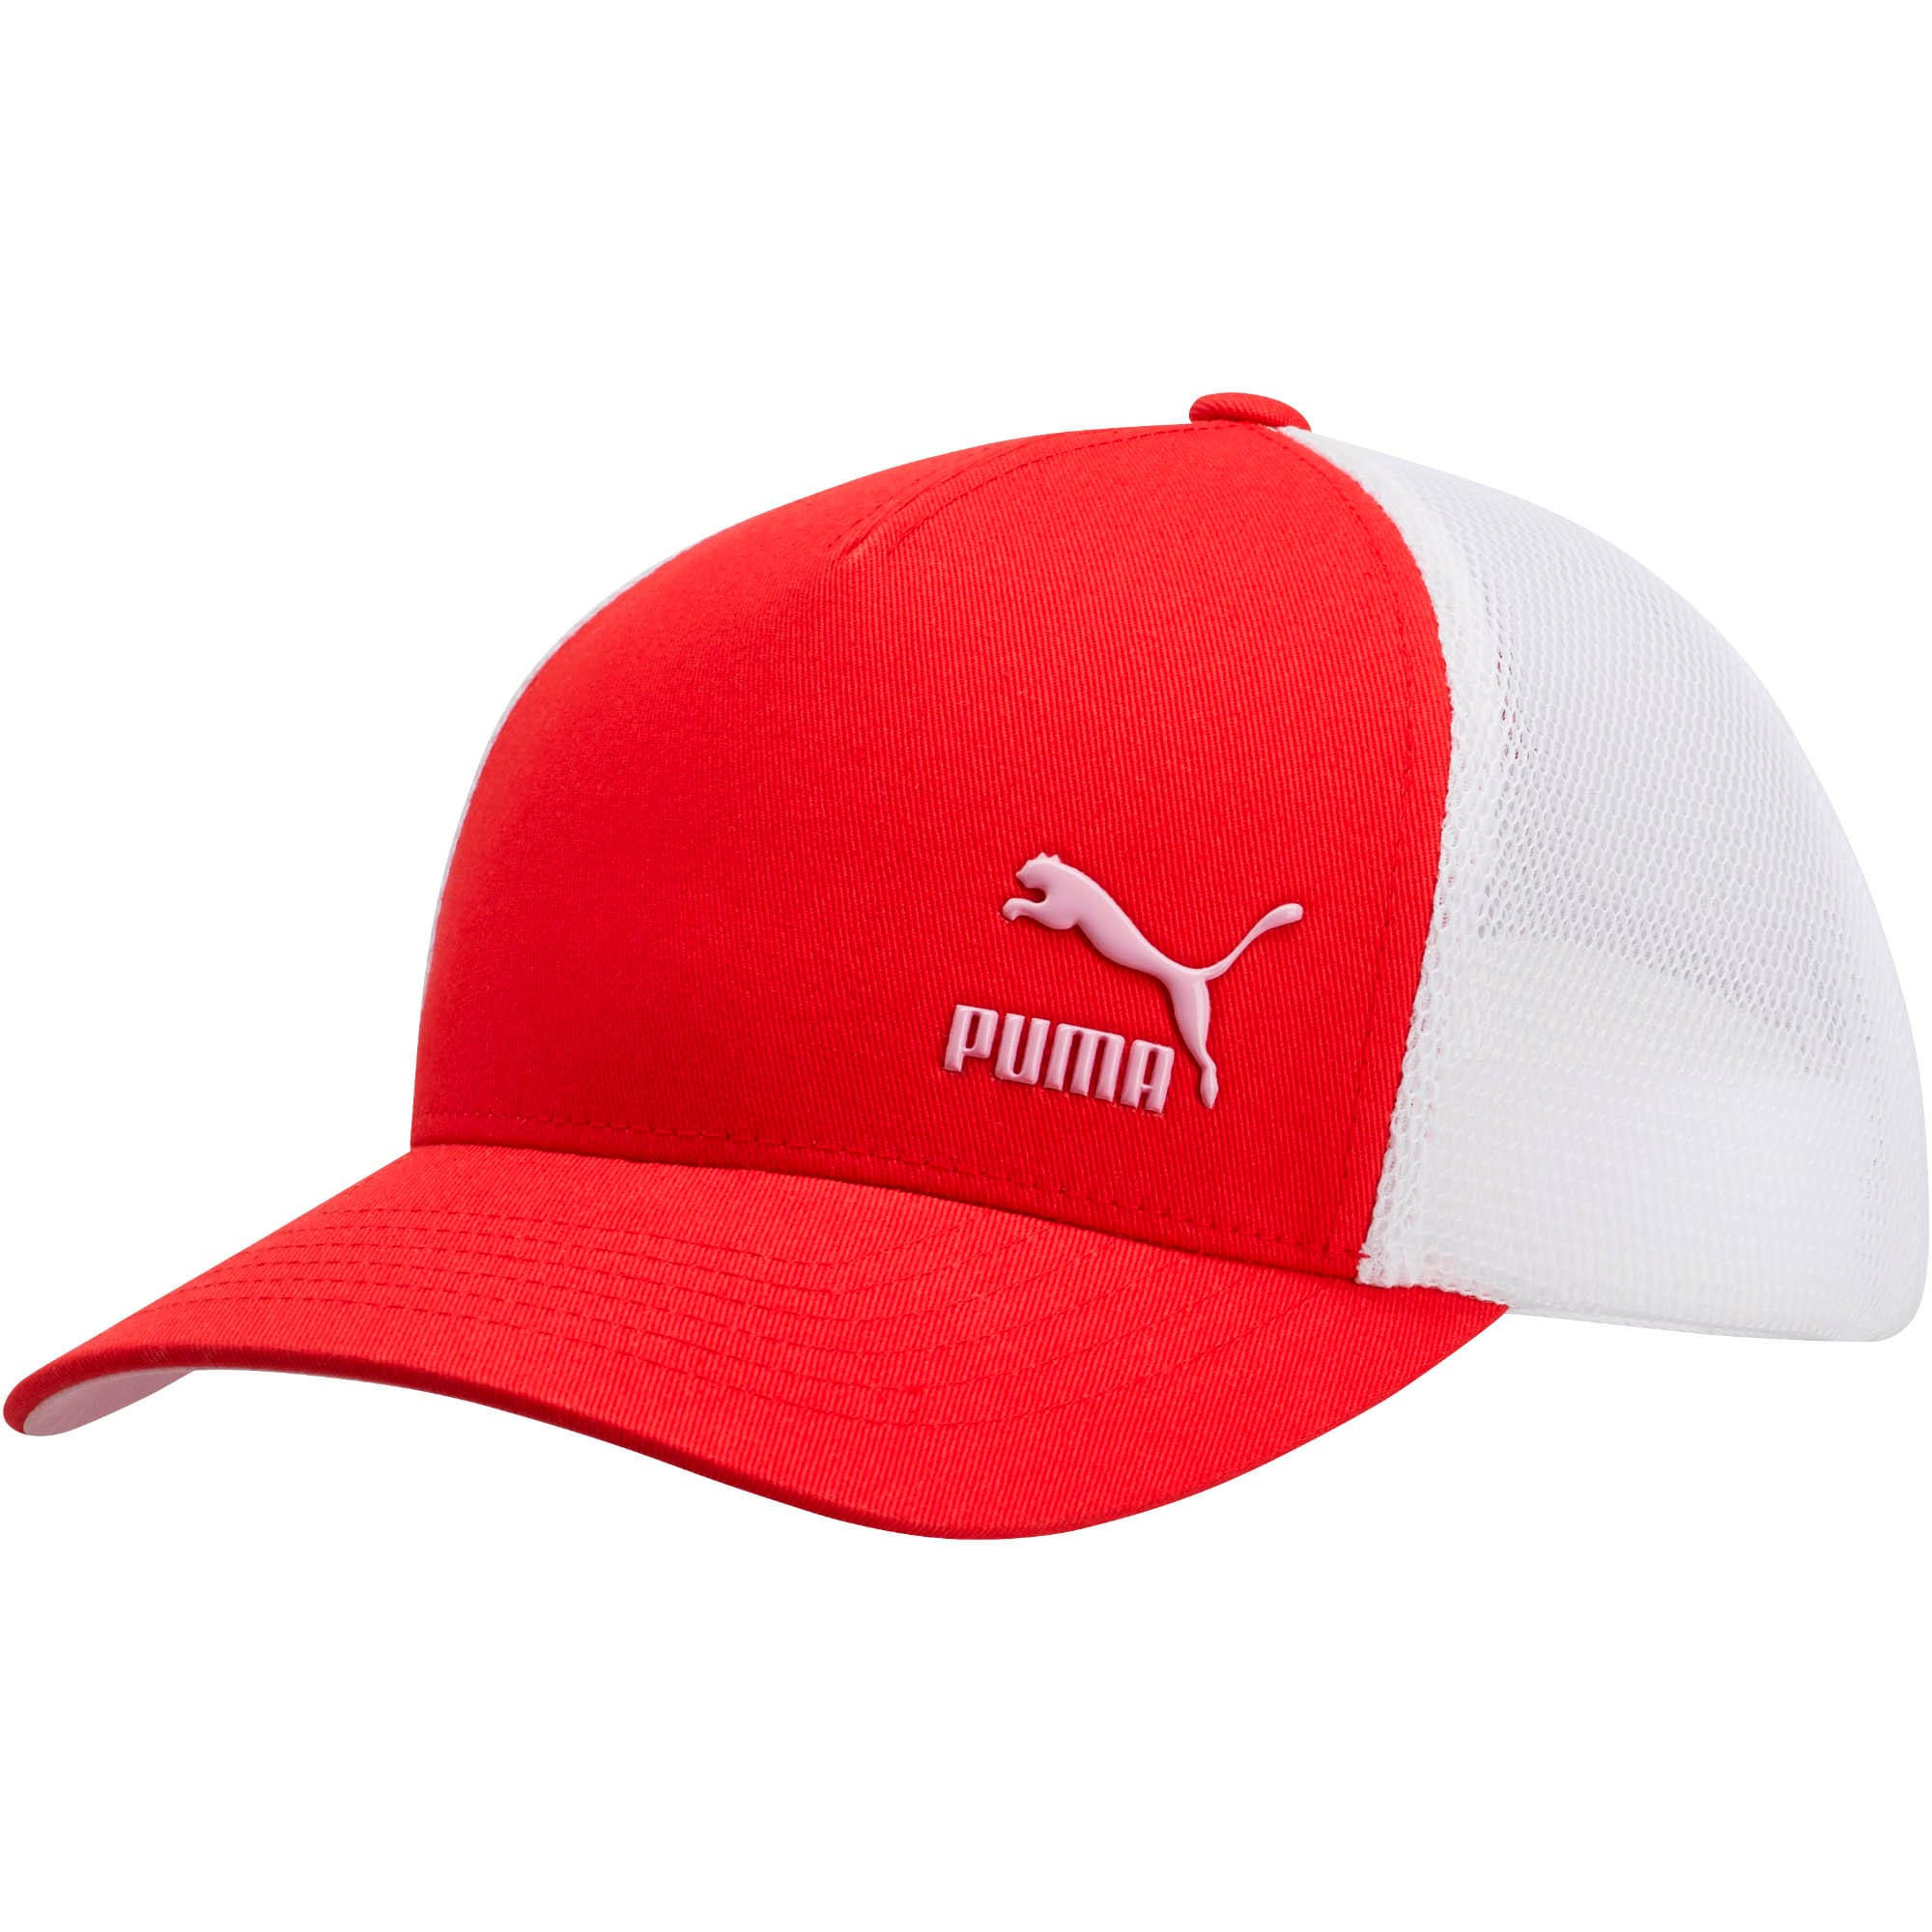 Thumbnail 1 of ULTIMATE SNAPBACK HAT, Bright Red, medium